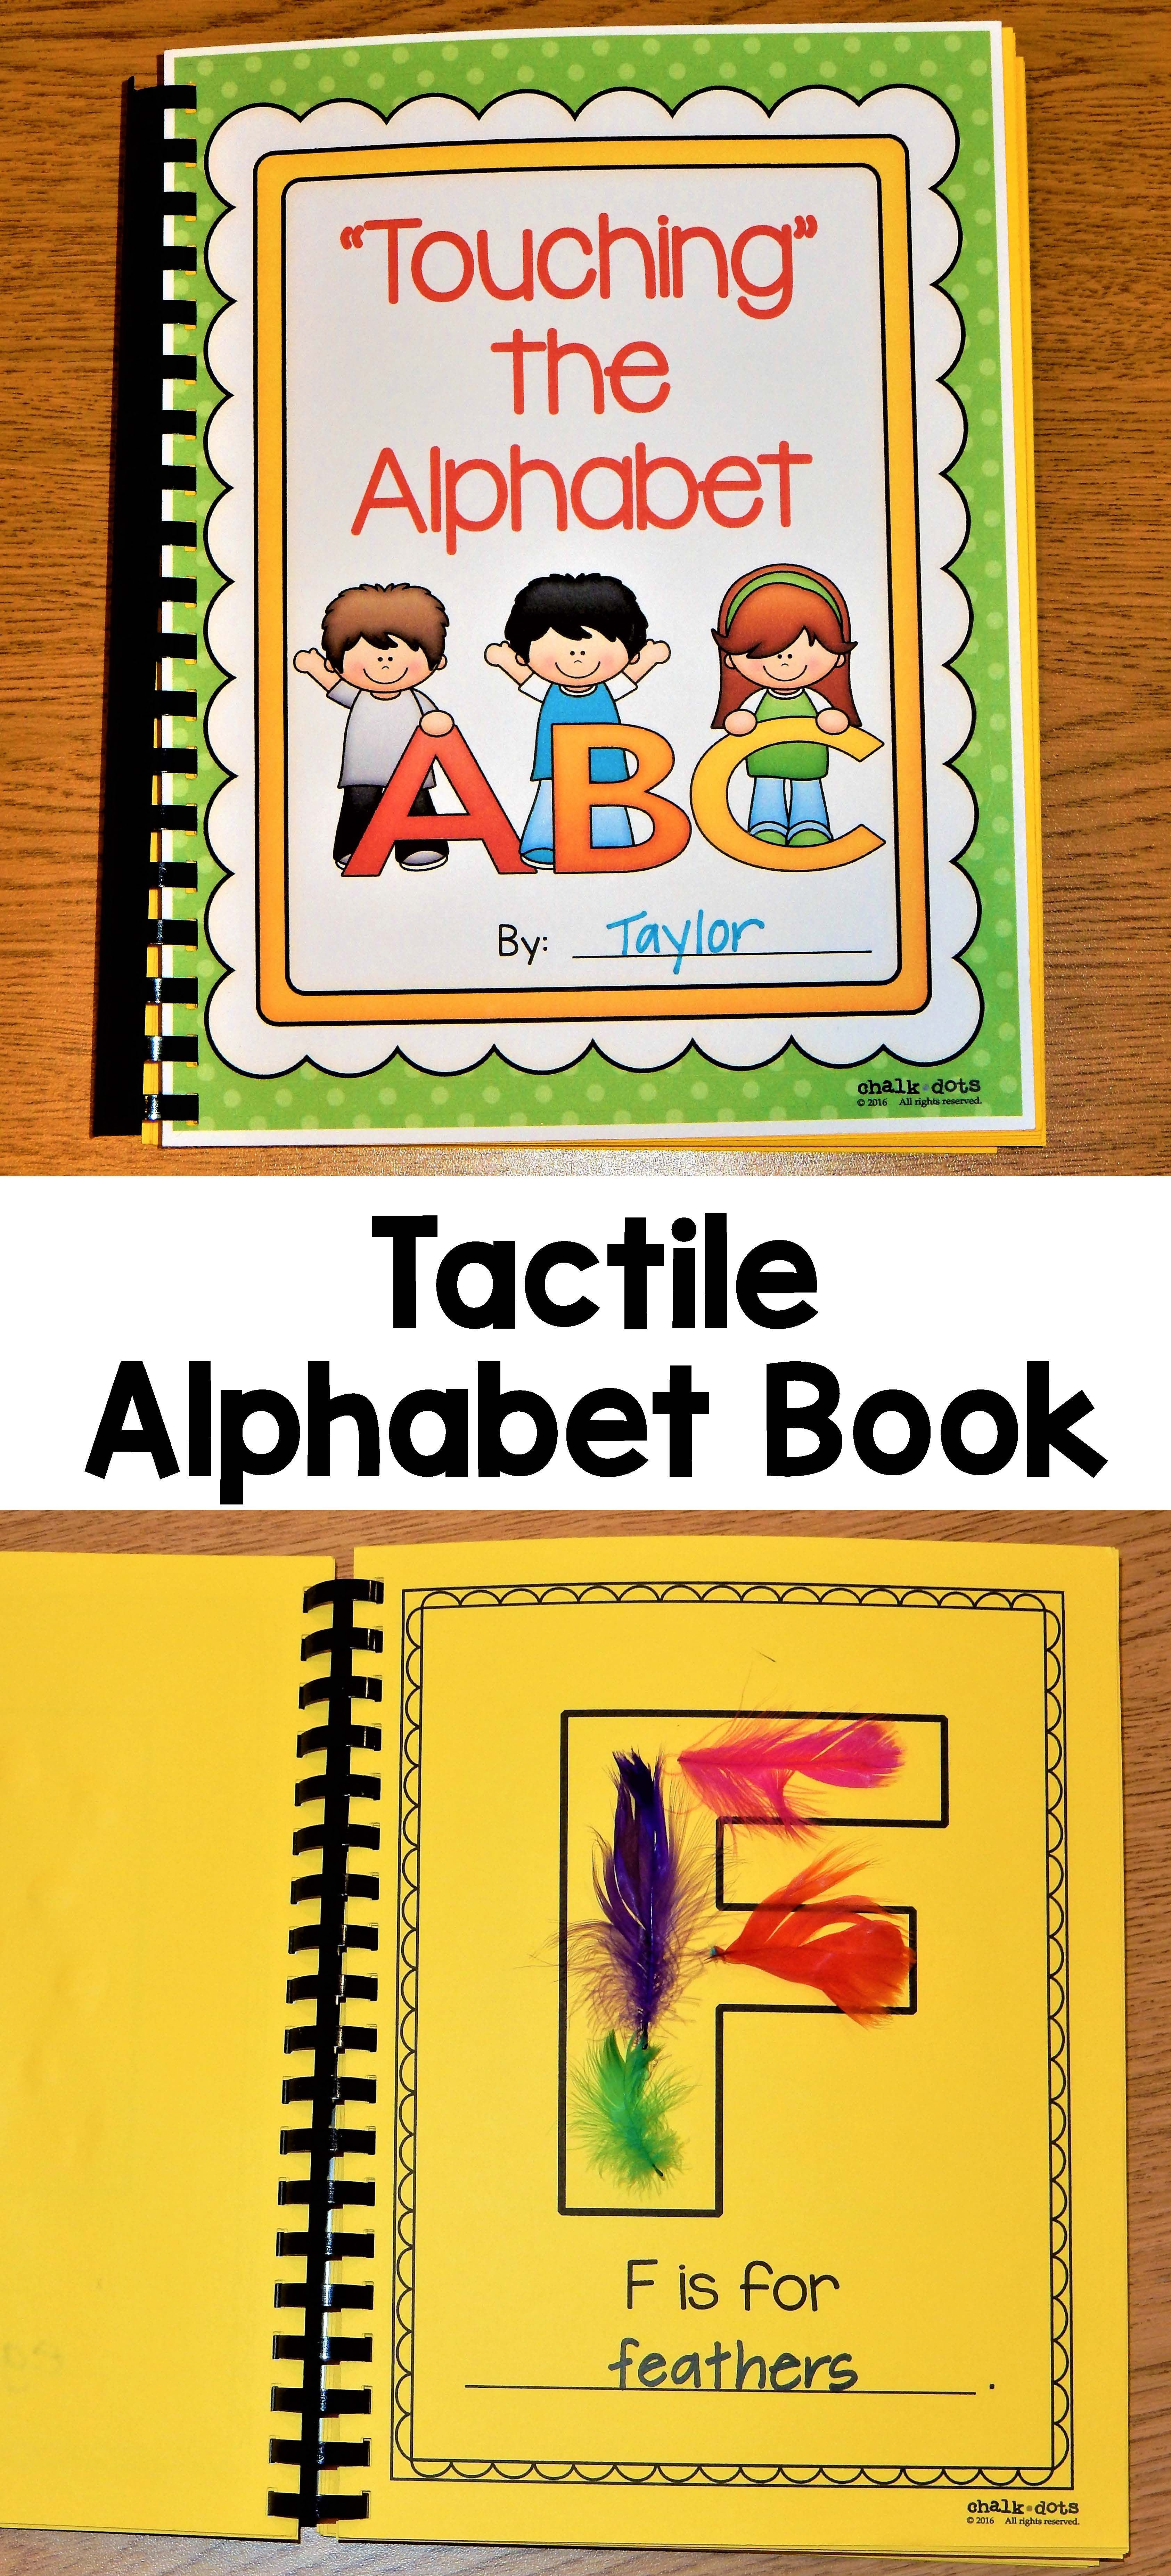 Learn your ABC. (Book, 2002) [WorldCat.org]